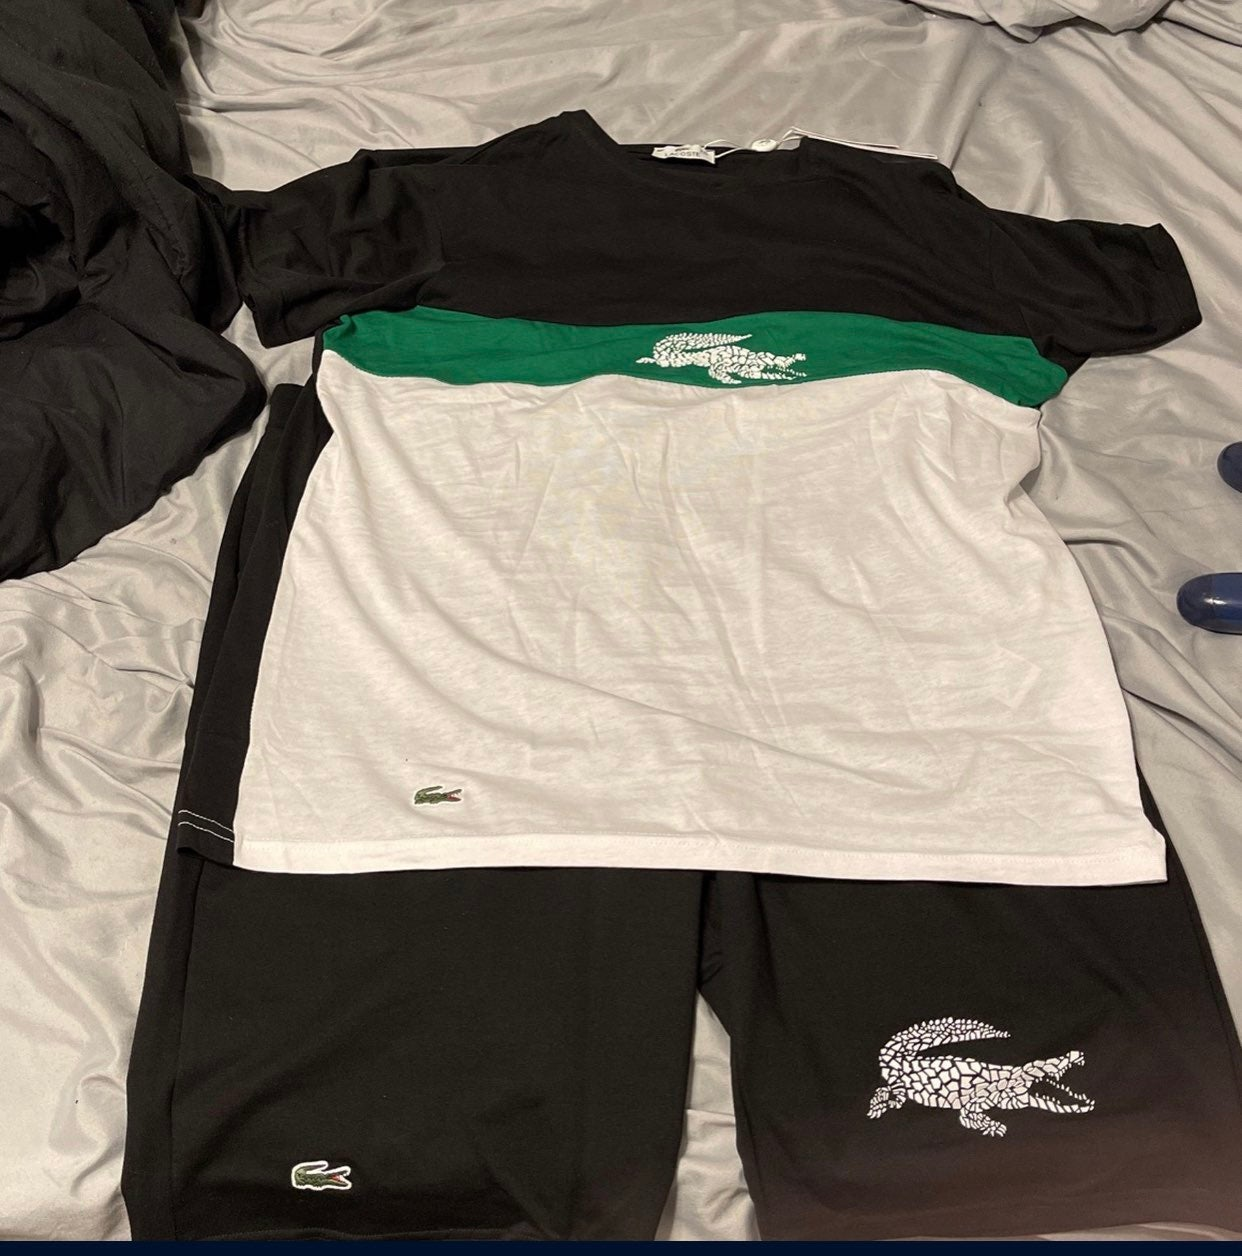 Full lacoste outfit 2XL